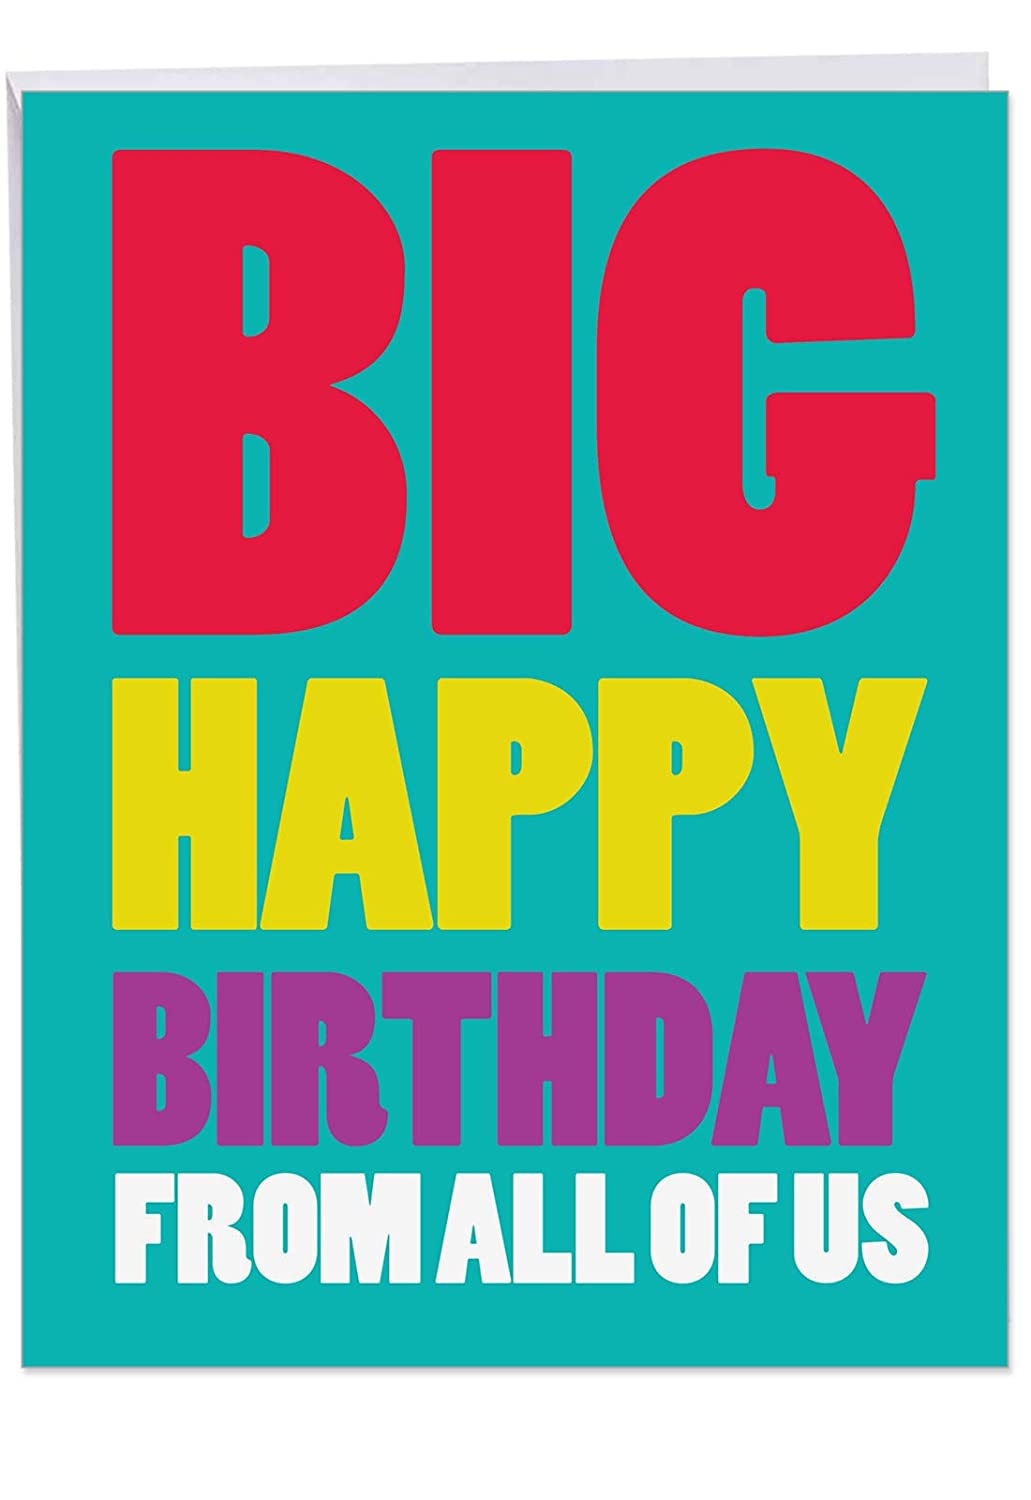 photograph about Inappropriate Birthday Cards Printable referred to as Massive Content Birthday Towards Us Card - Bday Greeting Card with Envelope (Letterhead Sized 8.5 x 11 Inch) - Entertaining, Colourful Stationery Notecard -